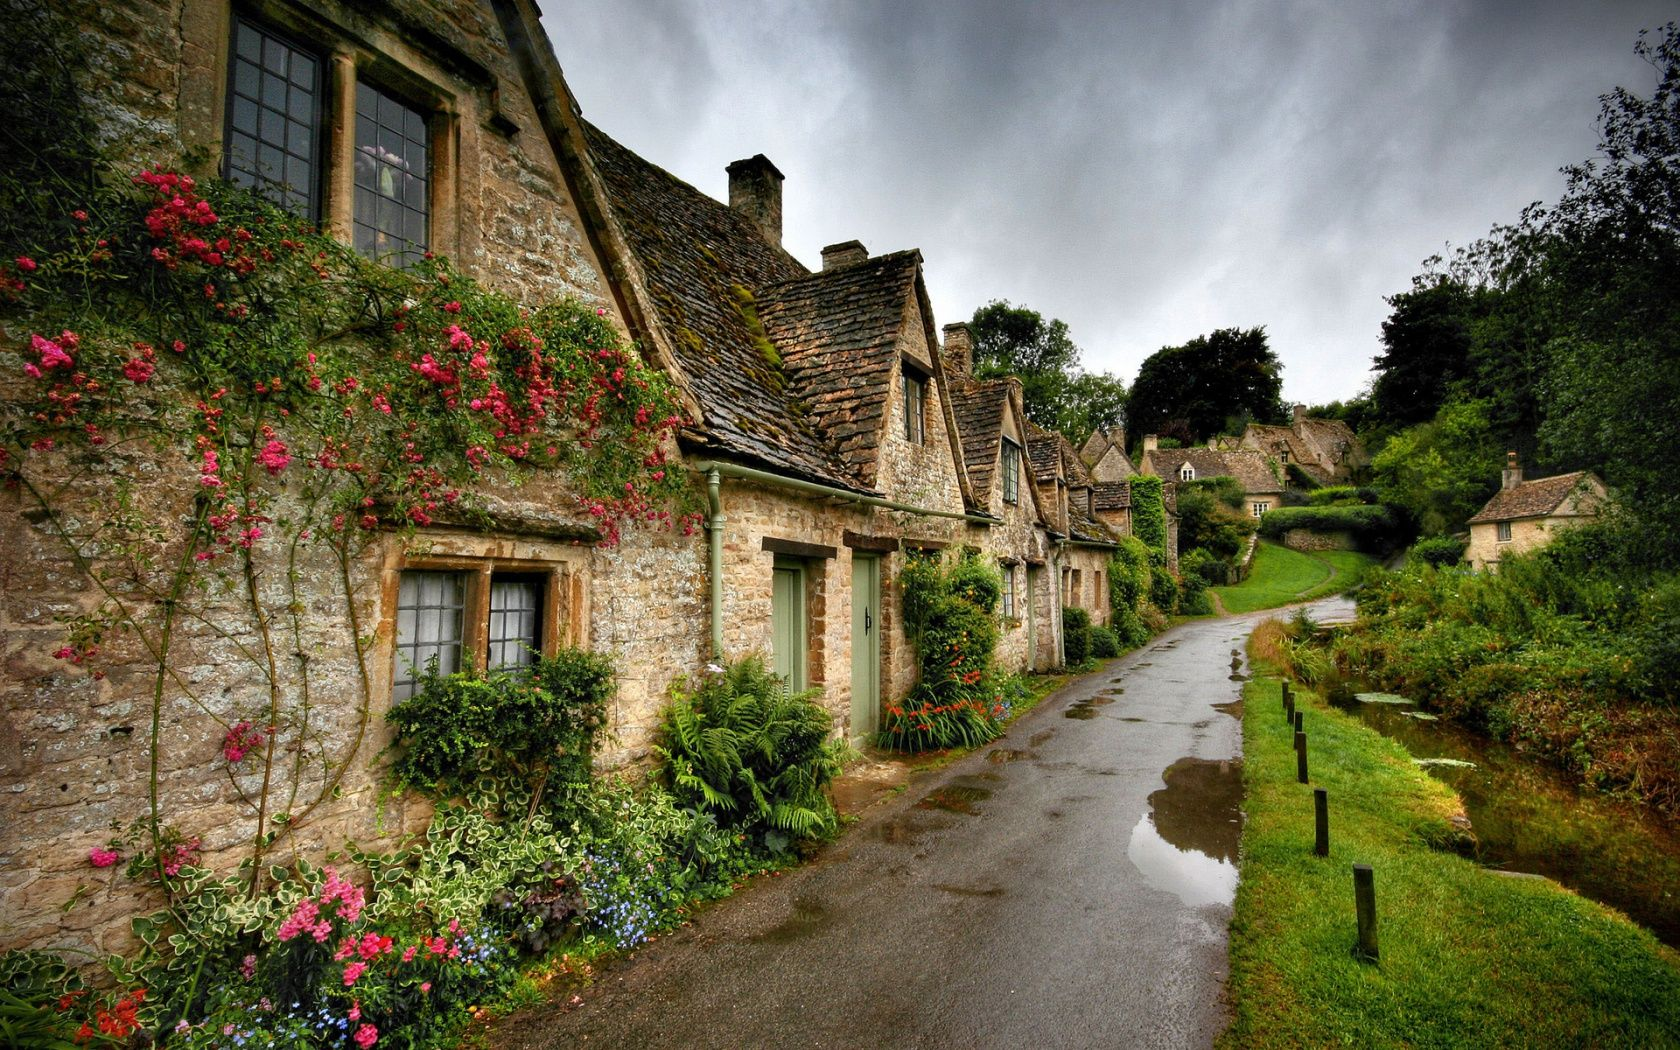 Ireland Pictures For Free Download Description Free Download Irish Village Wallpaper Desktop Background English Countryside Cotswolds England Irish Cottage